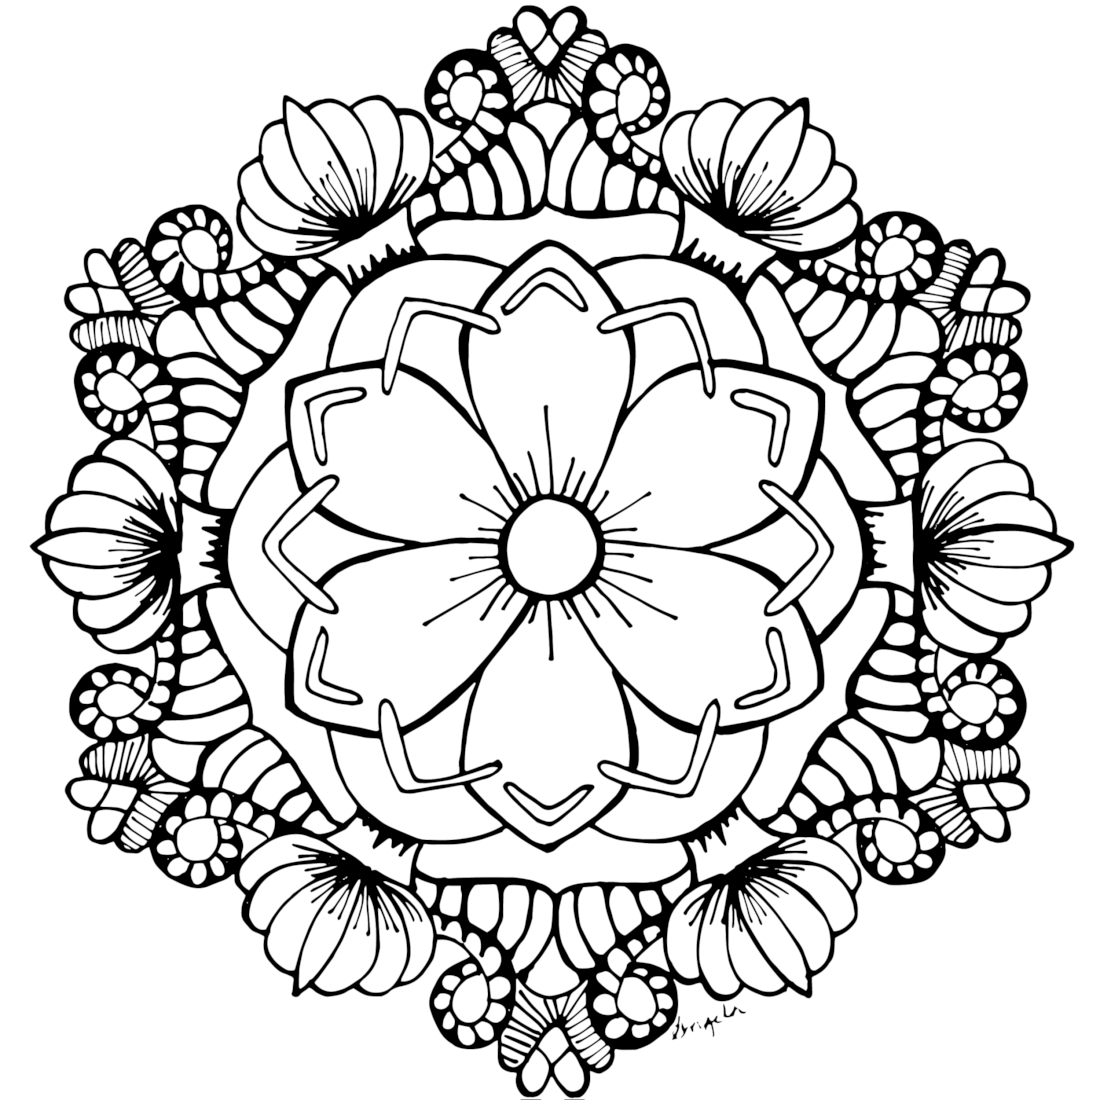 It is a picture of Free Printable Flower Coloring Pages for Adults intended for wild flower